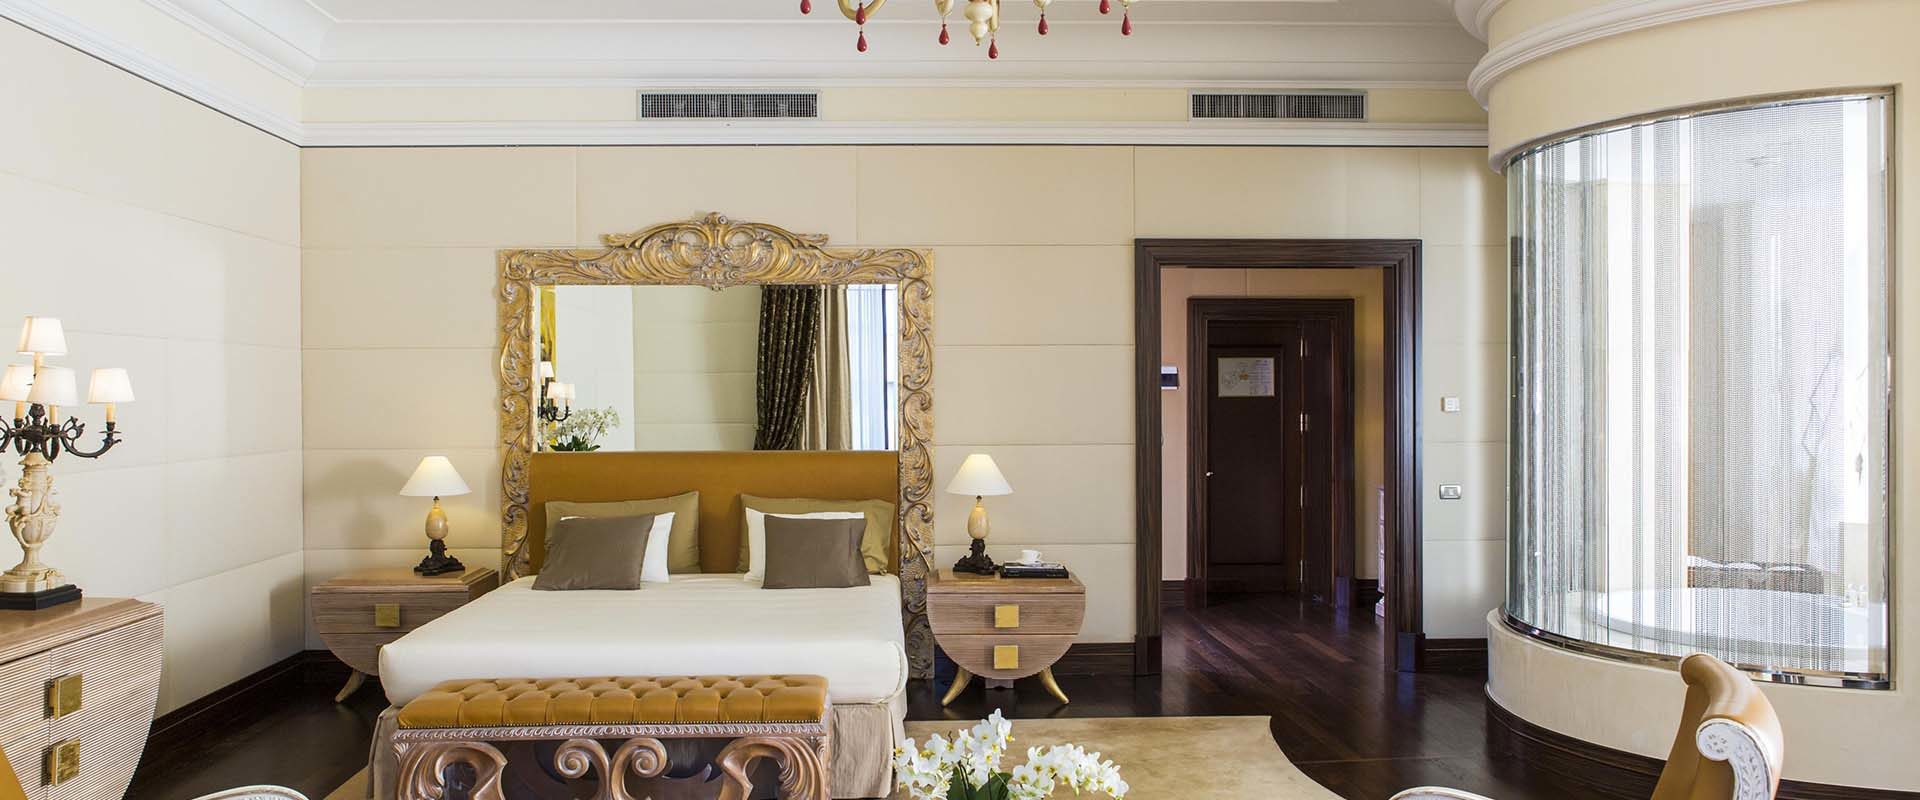 Bedroom of the Presidential Suite at the Palazzo Naiadi luxury hotel in Rome